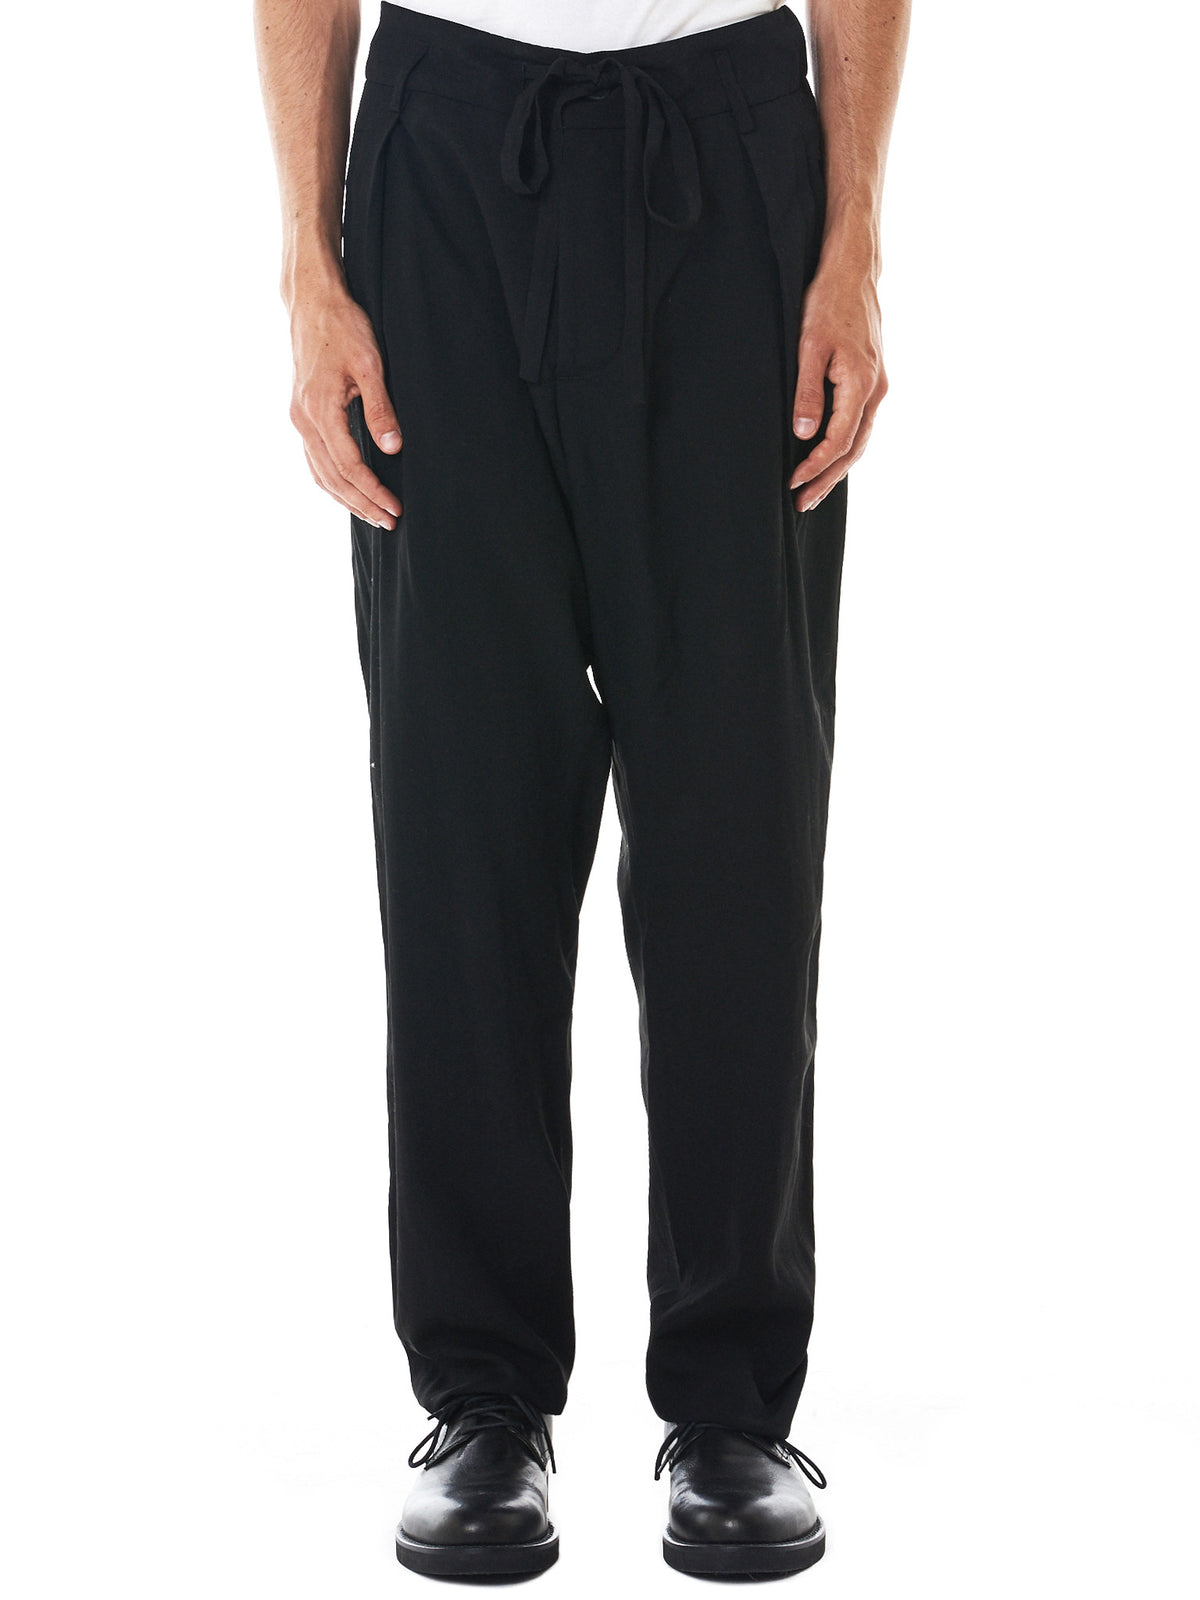 Knife-Pleated Trousers (PIANO-BLACK)